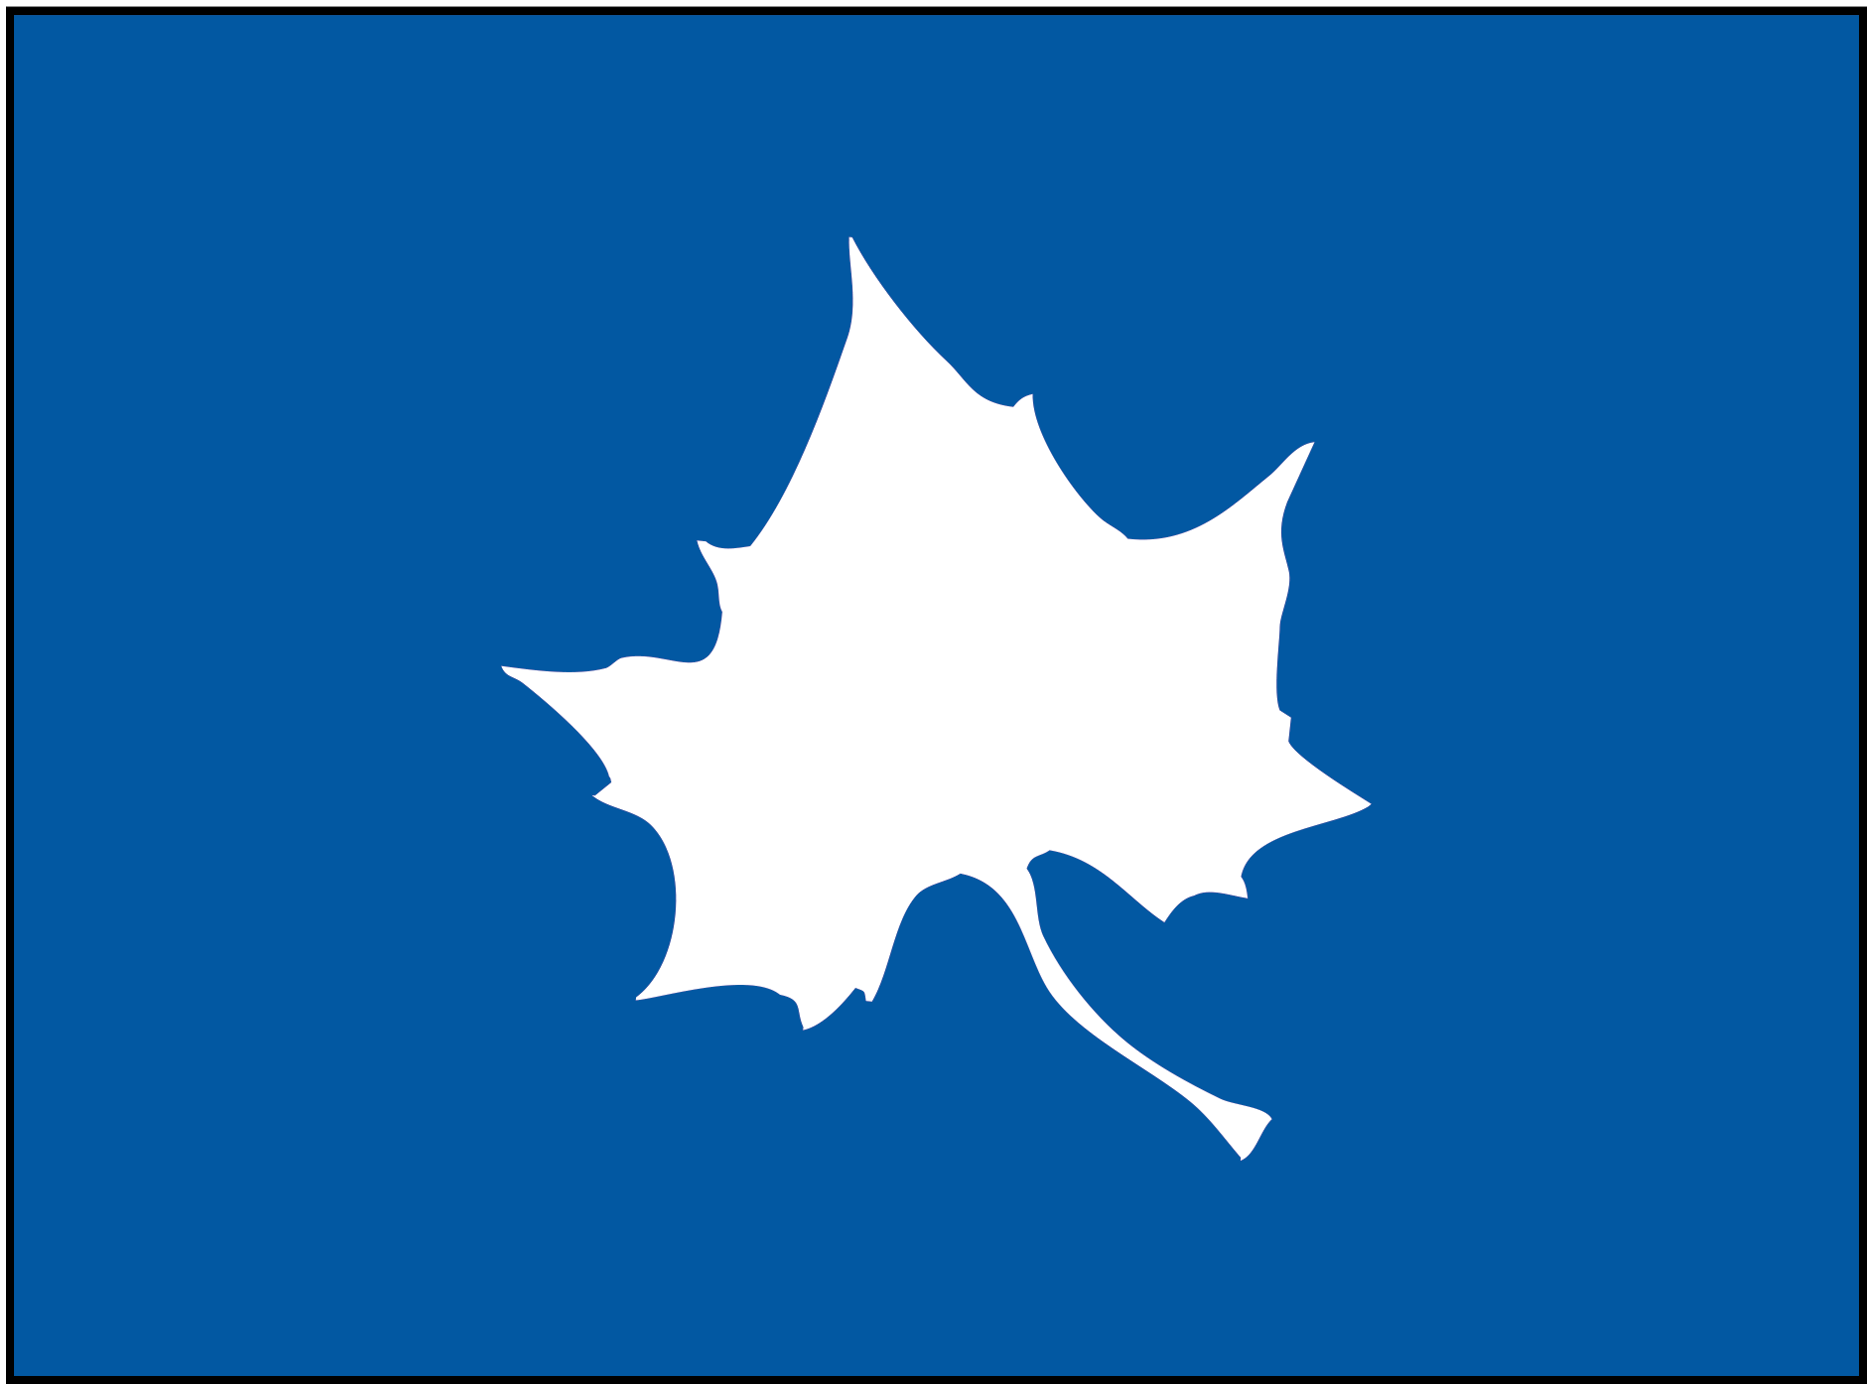 State blue with the leaf